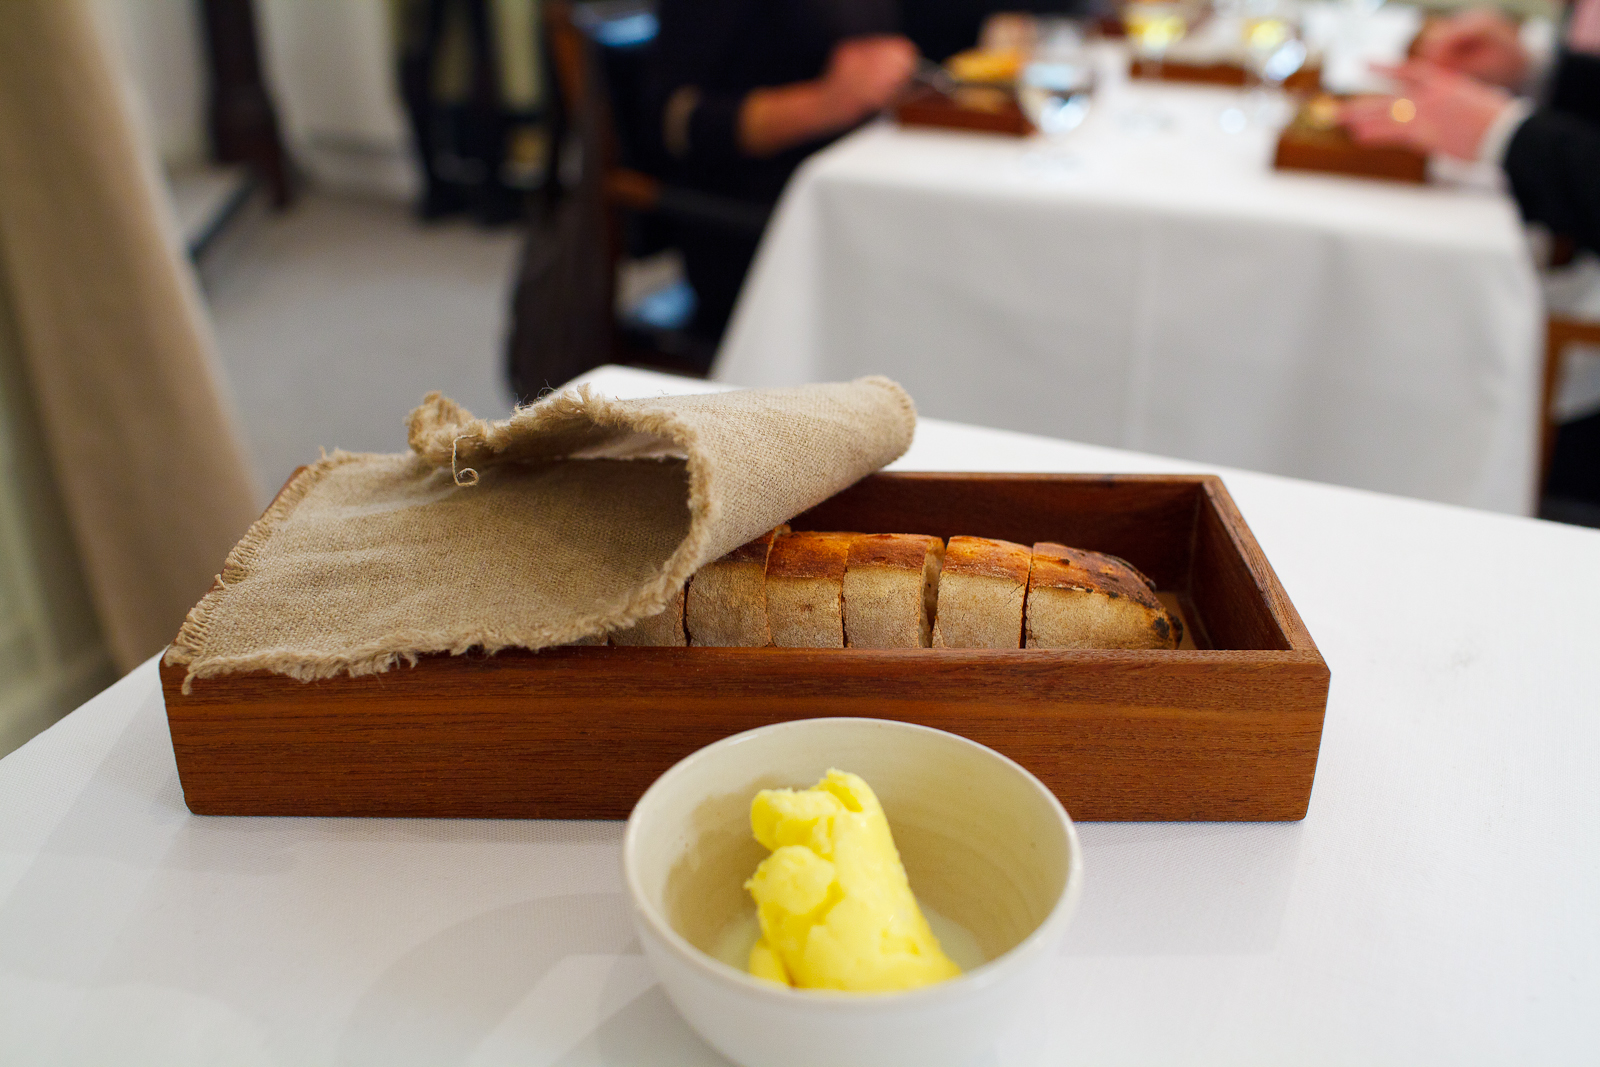 Freshly baked bread with house-churned butter